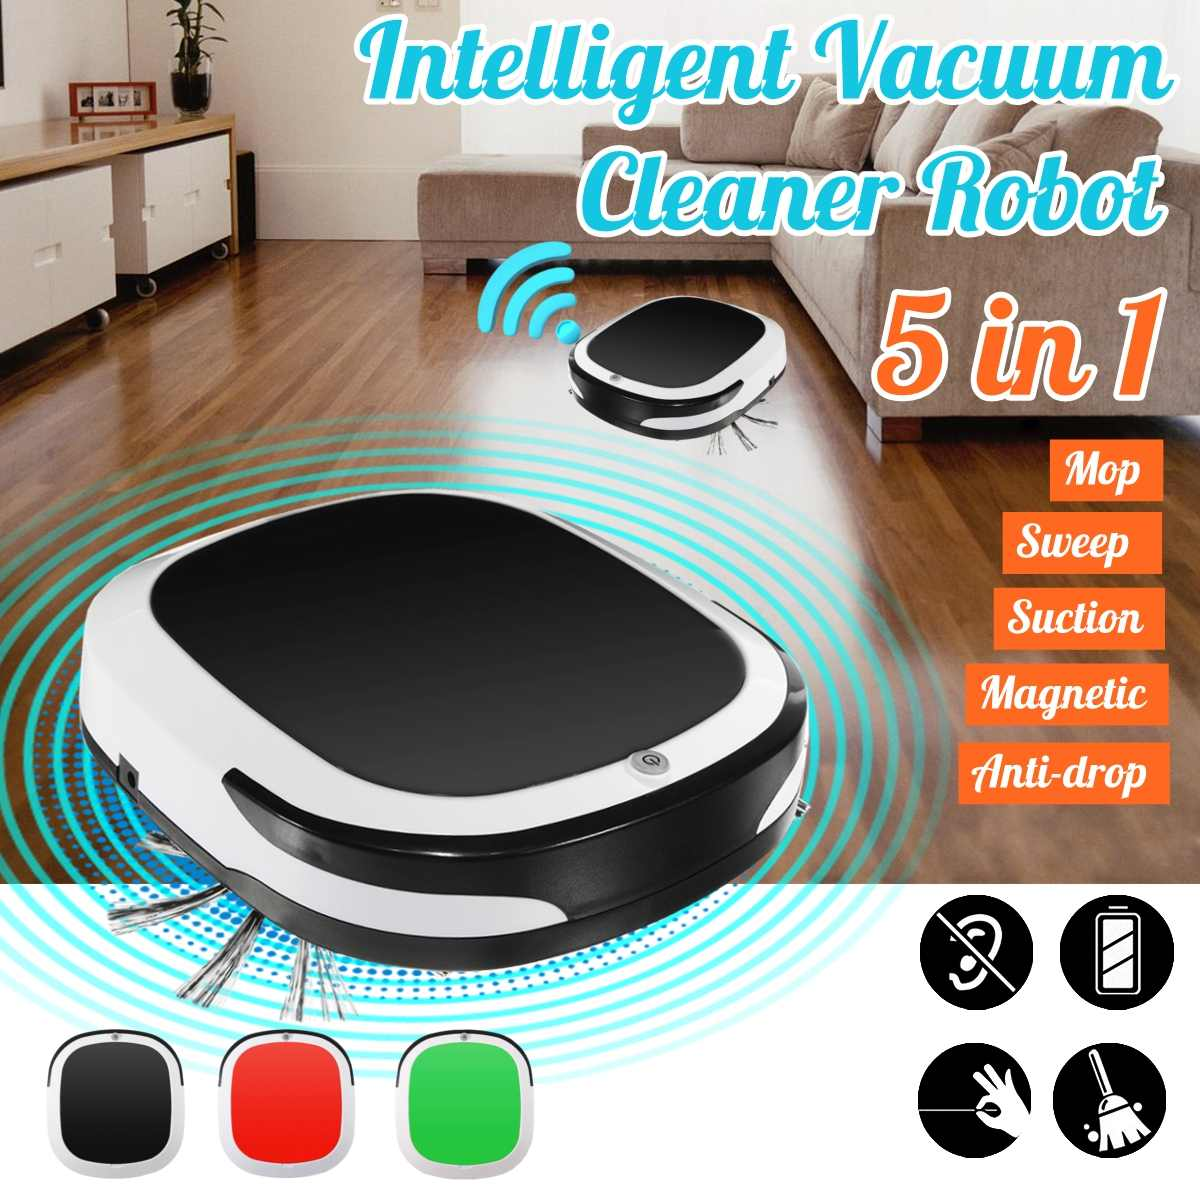 Rechargeable Intelligent Robot Vacuum Cleaner Robot Sweeping Machine 1800pa Low Noise for Home OfficeRechargeable Intelligent Robot Vacuum Cleaner Robot Sweeping Machine 1800pa Low Noise for Home Office